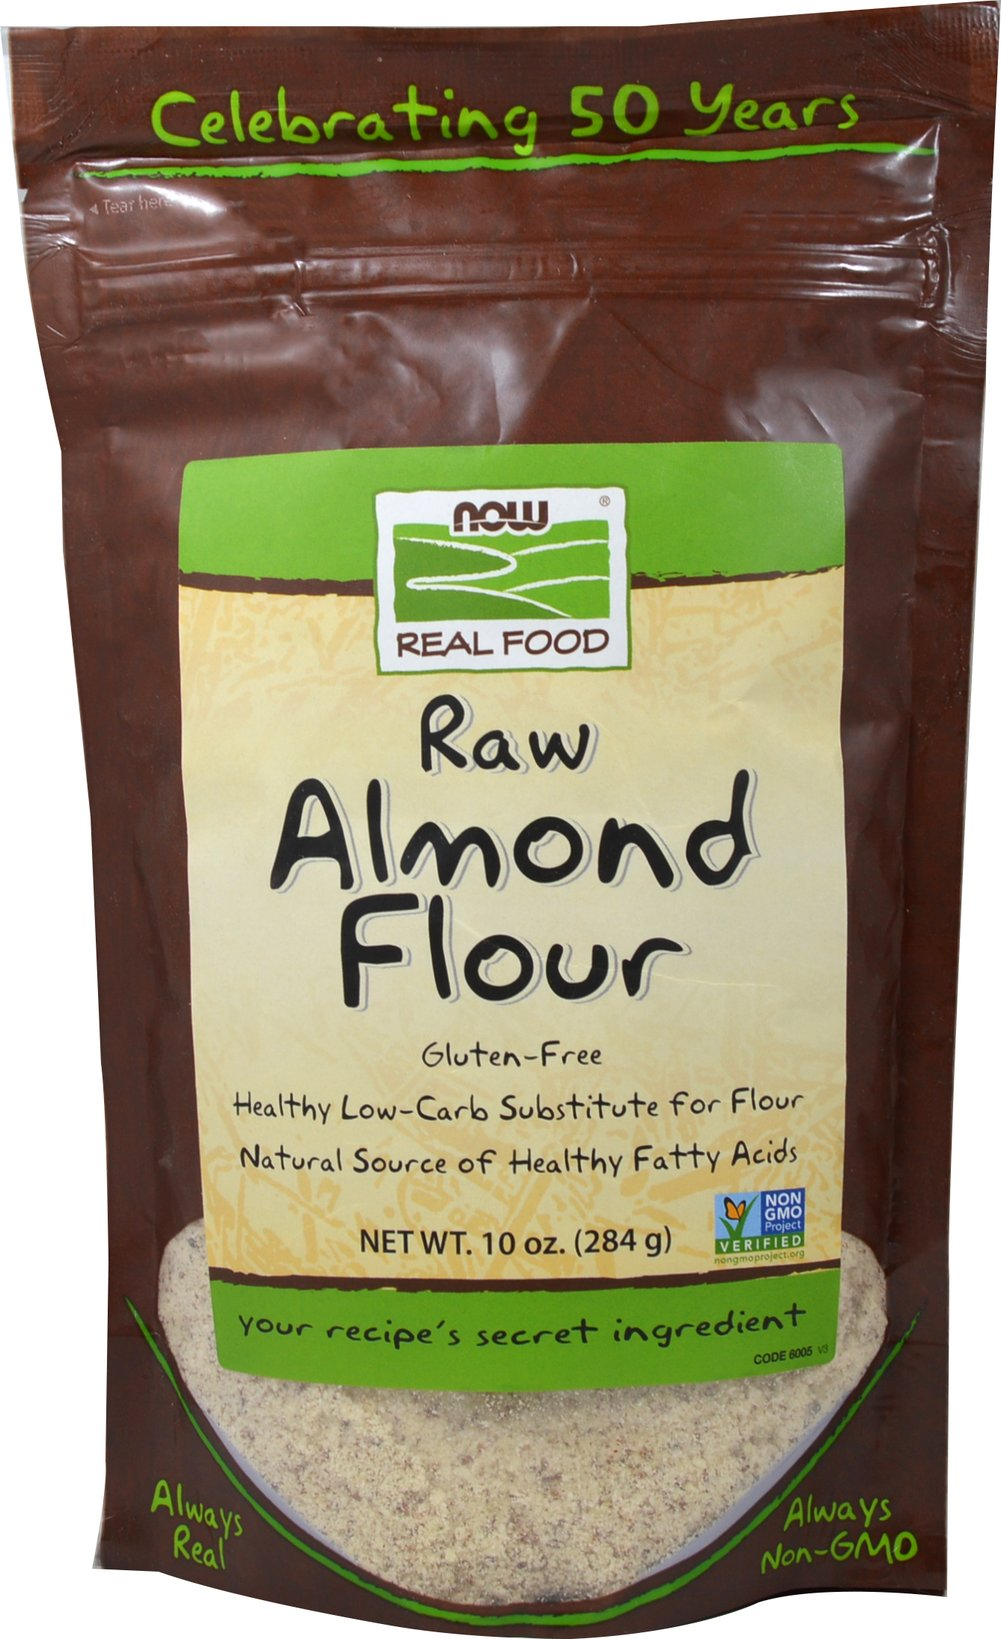 Almond Flour <p><strong>From the Manufacturer: </strong></p><p>Now Foods Almond Flour is an unblanched, gluten-free flour that is an excellent low-carb substitute for other flours used in baking, either wholly or in part. With Almond Flour, you can add color, texture, richness, and flavor to your baked goods as well as everyday meals.</p> 10 oz Bag  $9.99